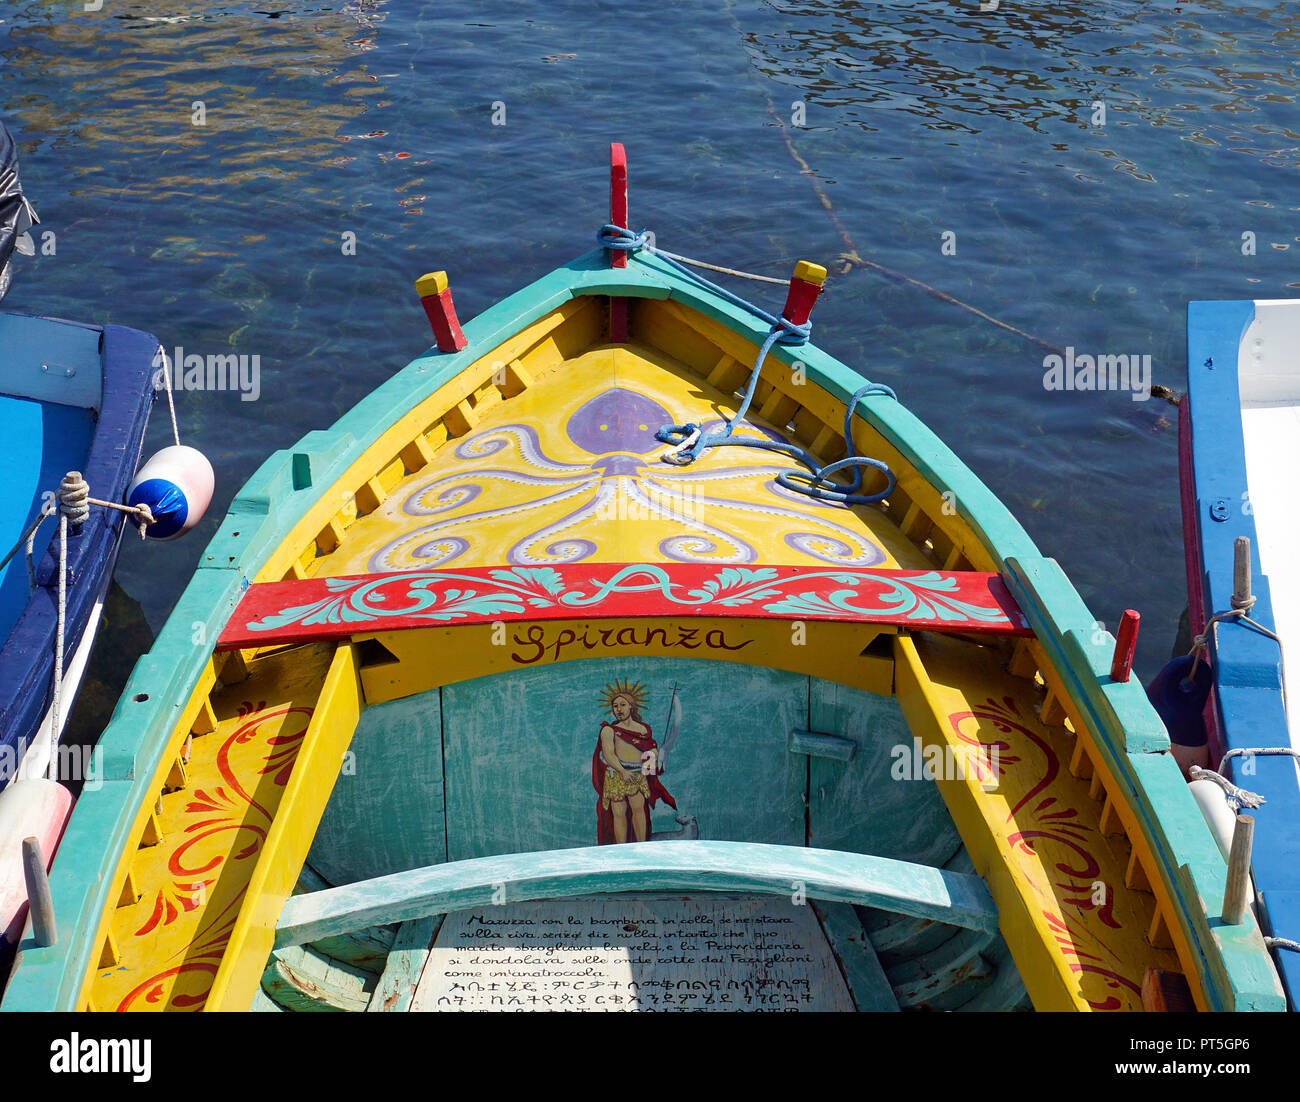 Colourful painted fishing boat with religious text at harbour of fishing village Aci Trezza, comune of Aci Castello, Catania, Sicily, Italy Stock Photo